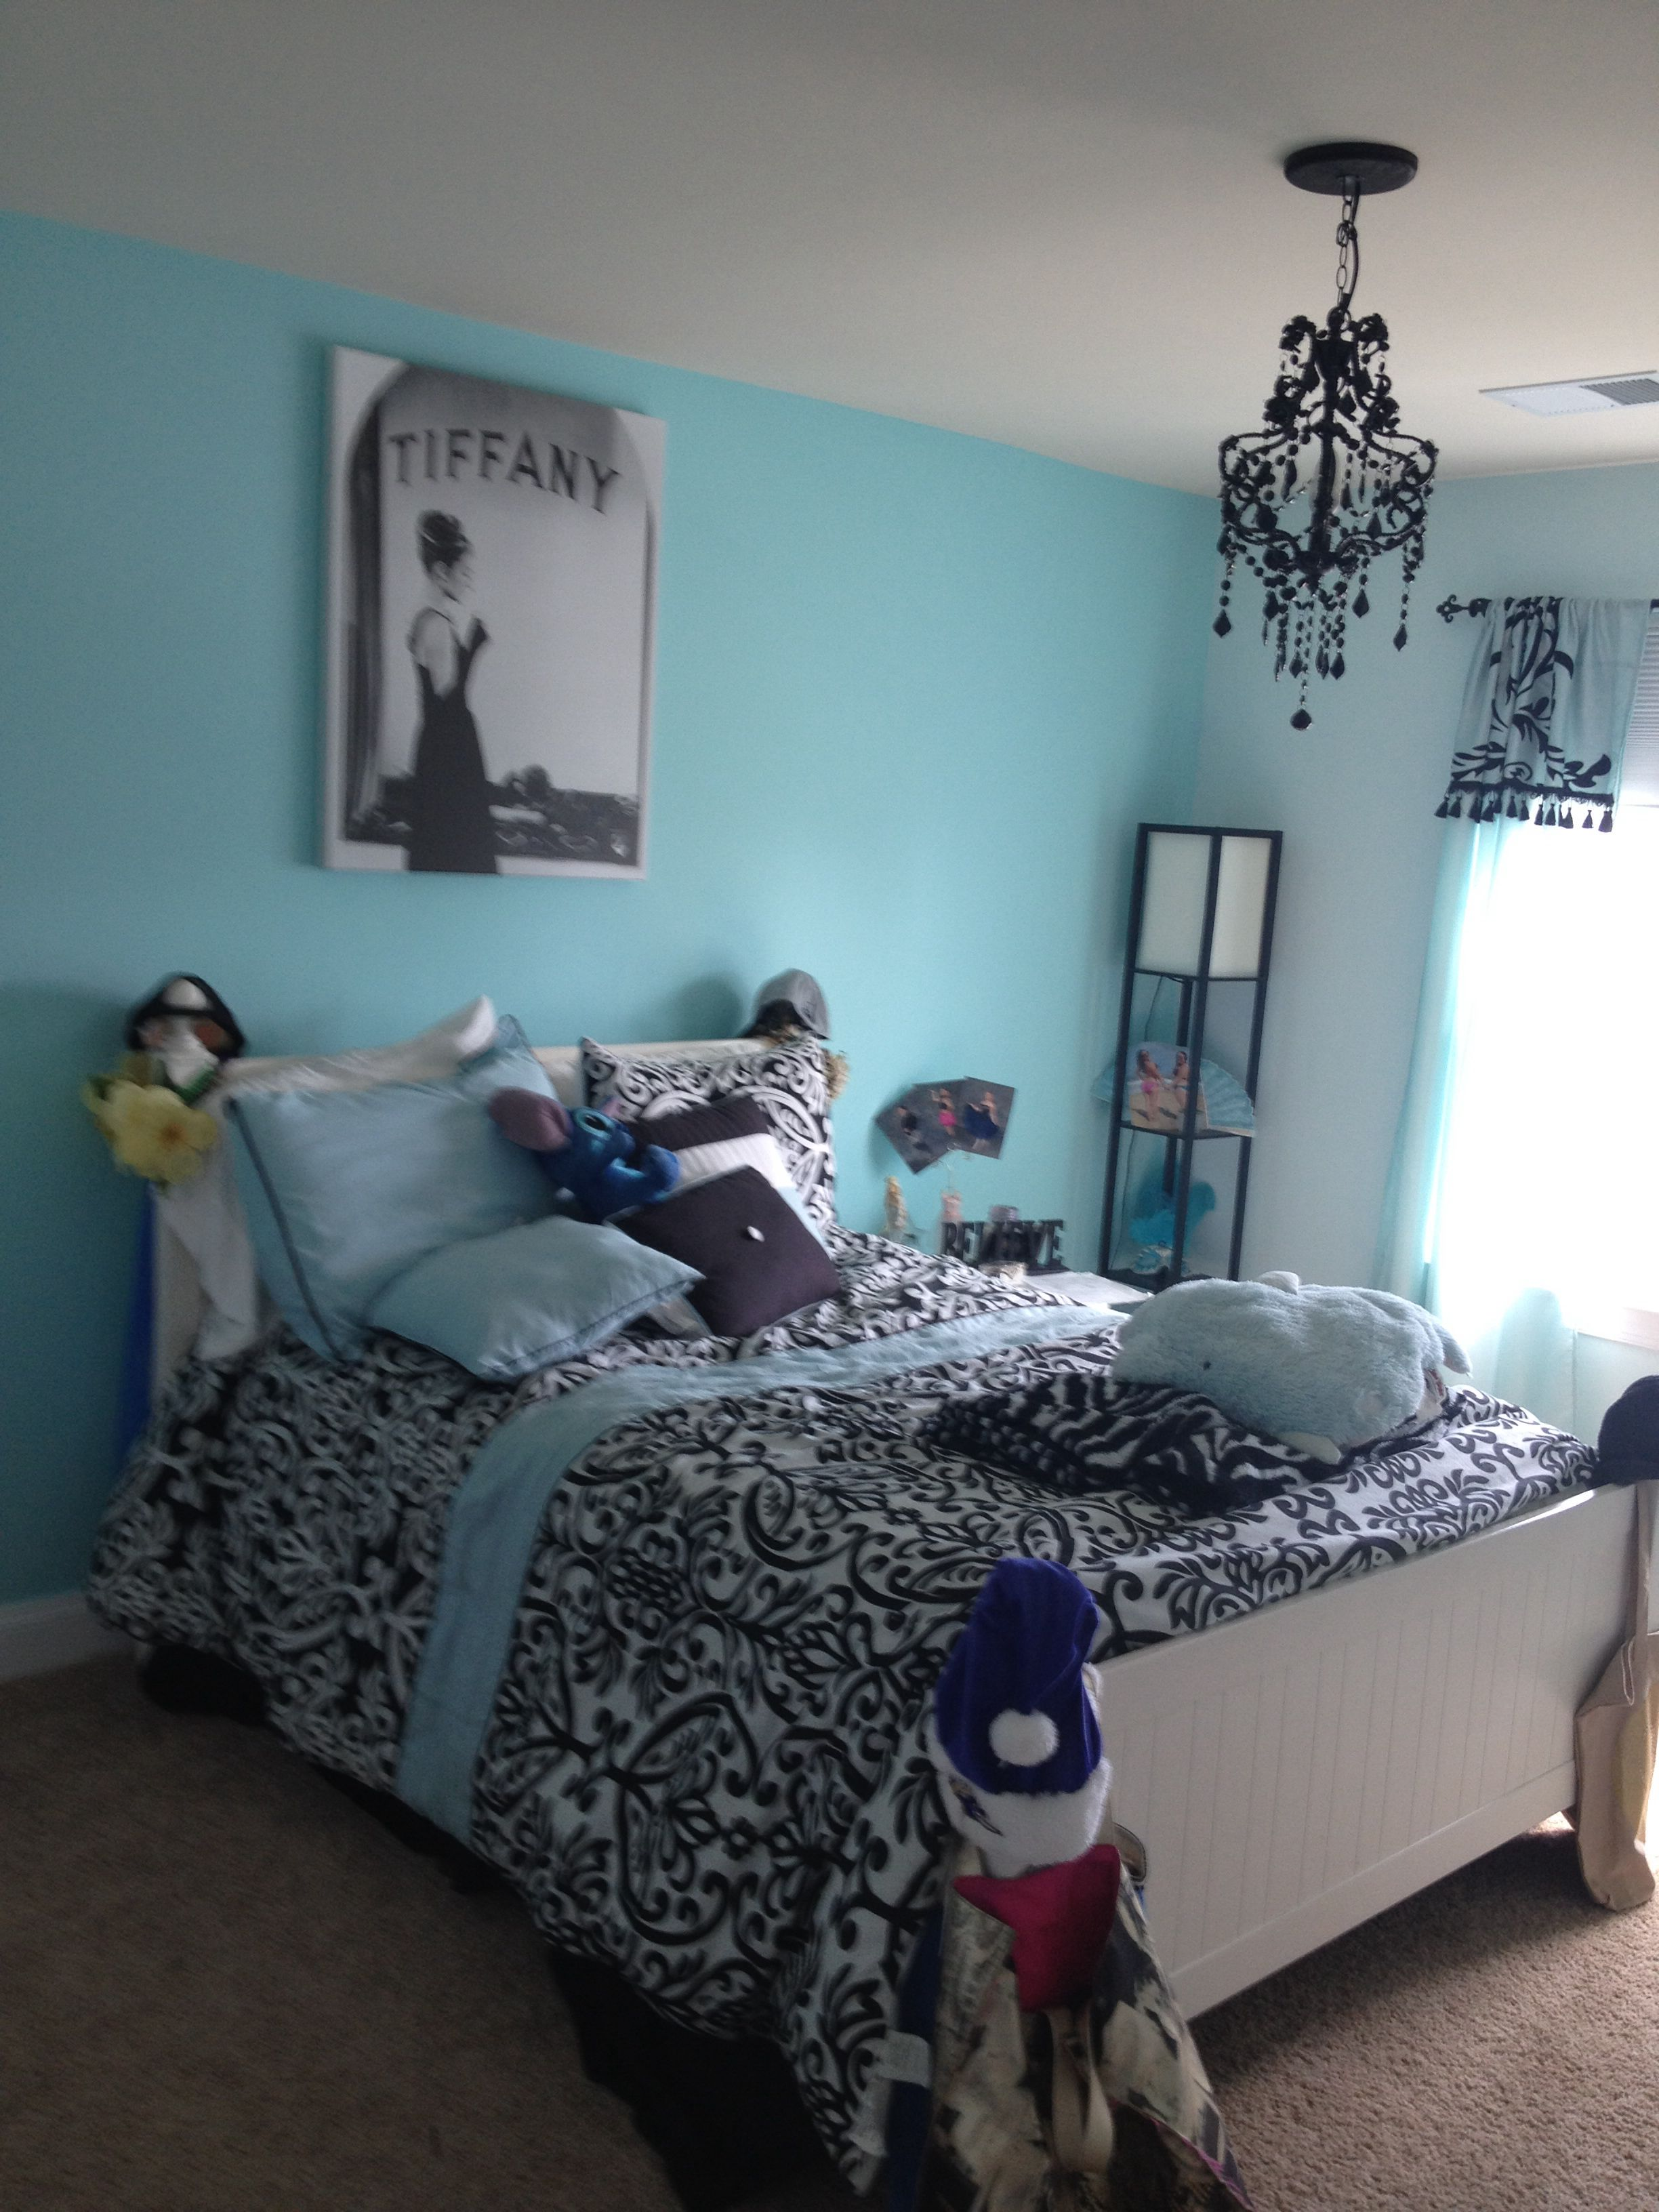 sis room tiffany blue my house tiffany blue rooms tiffany blue bedroom blue bedroom. Black Bedroom Furniture Sets. Home Design Ideas